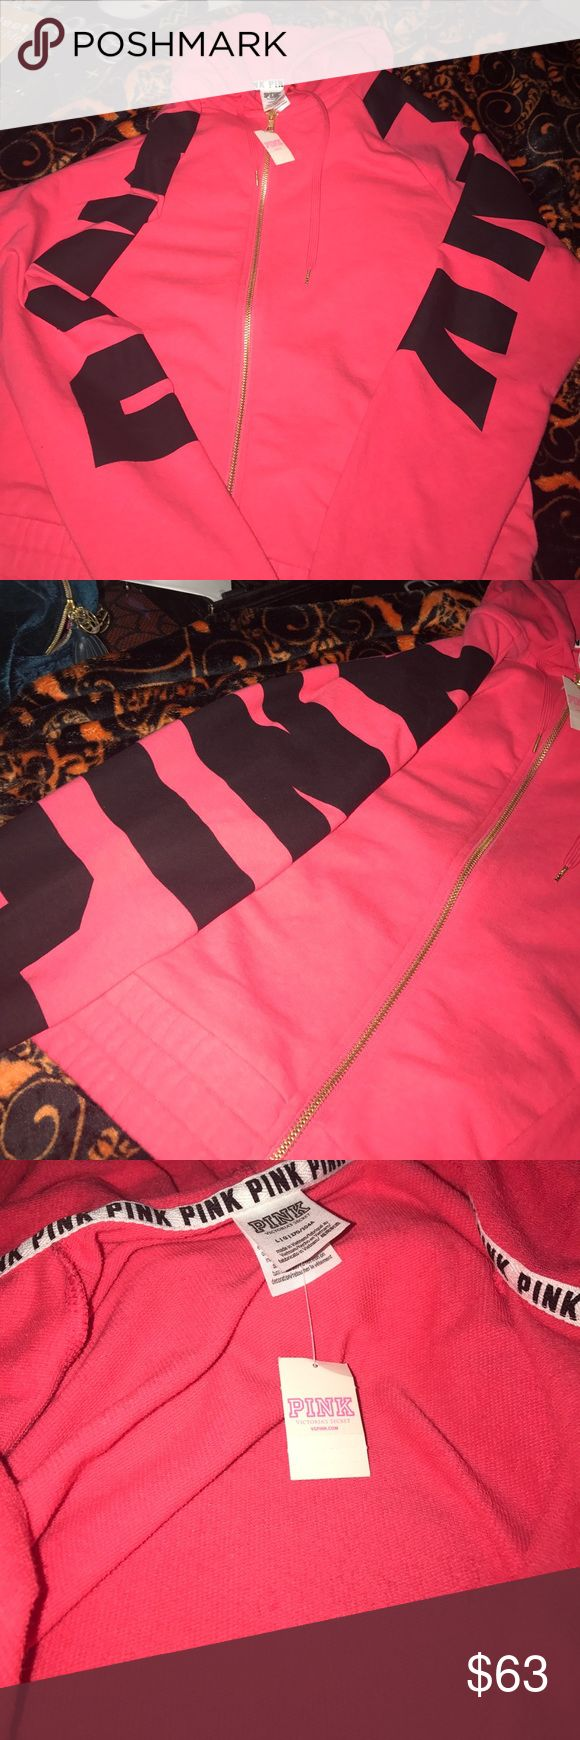 Pink zip up hoodie NWT has pink logo on sleeves material is like a towel material PINK Victoria's Secret Other